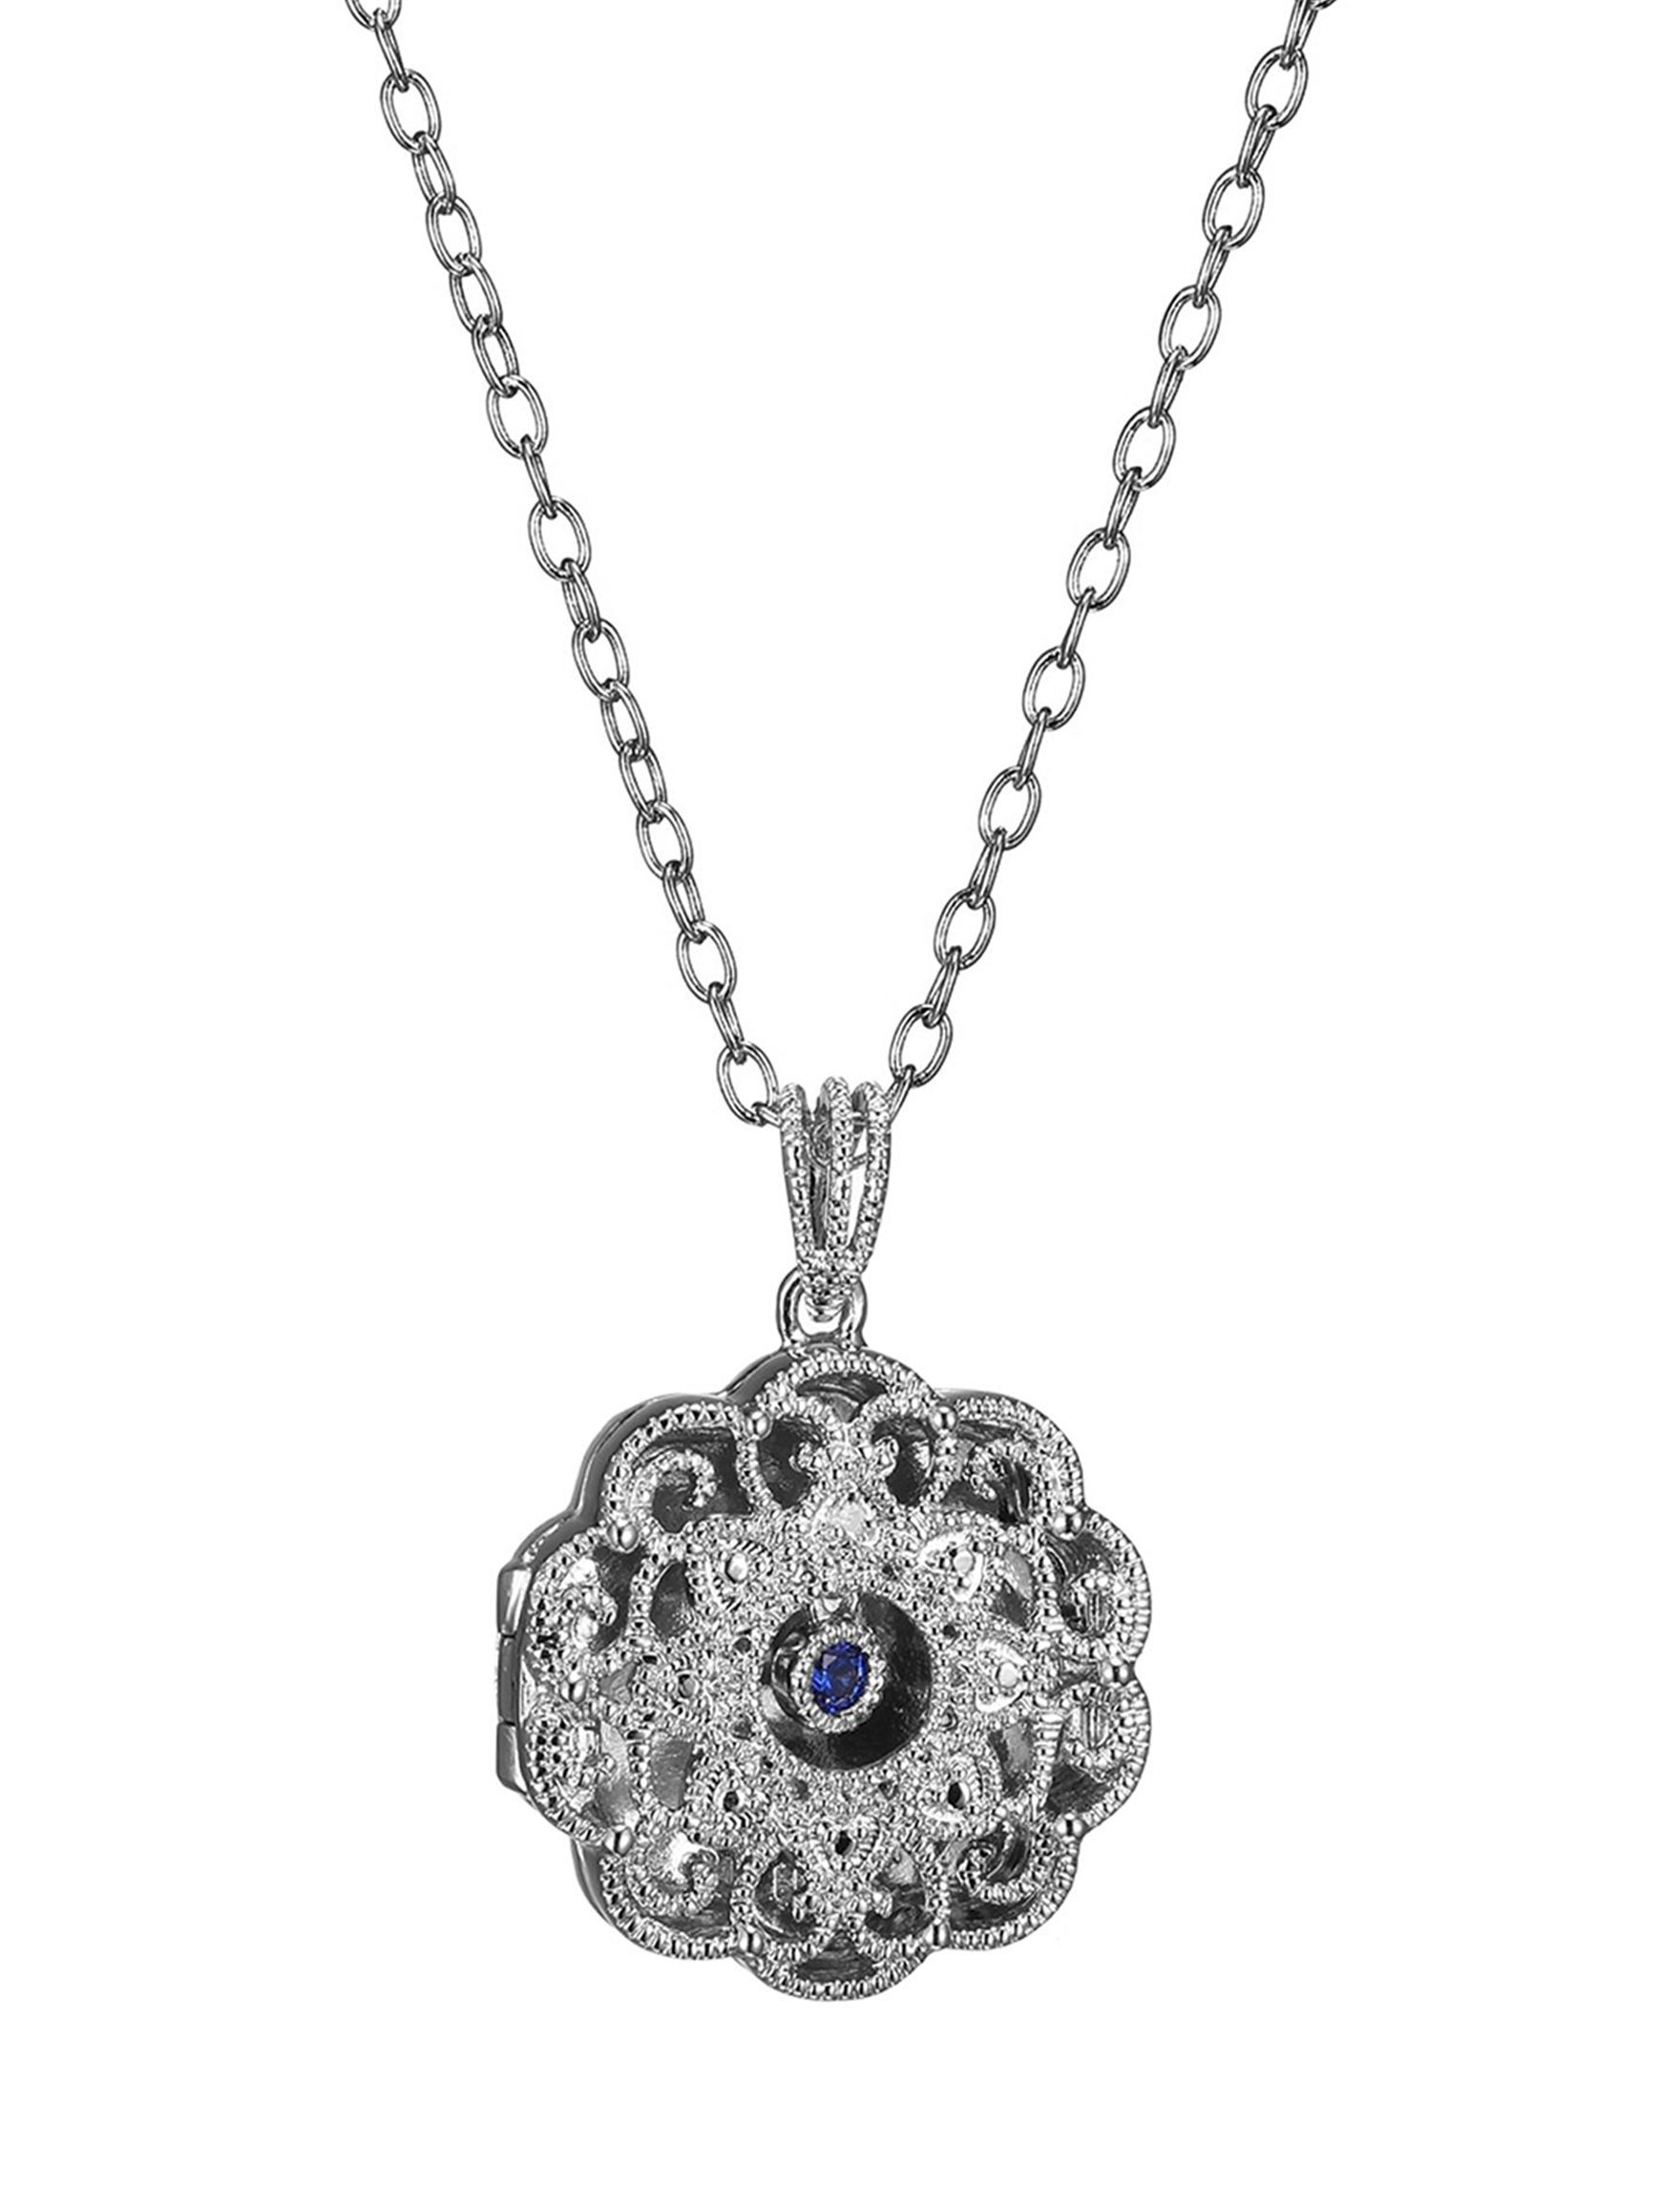 PAJ INC. Blue Crystal Necklaces & Pendants Fine Jewelry